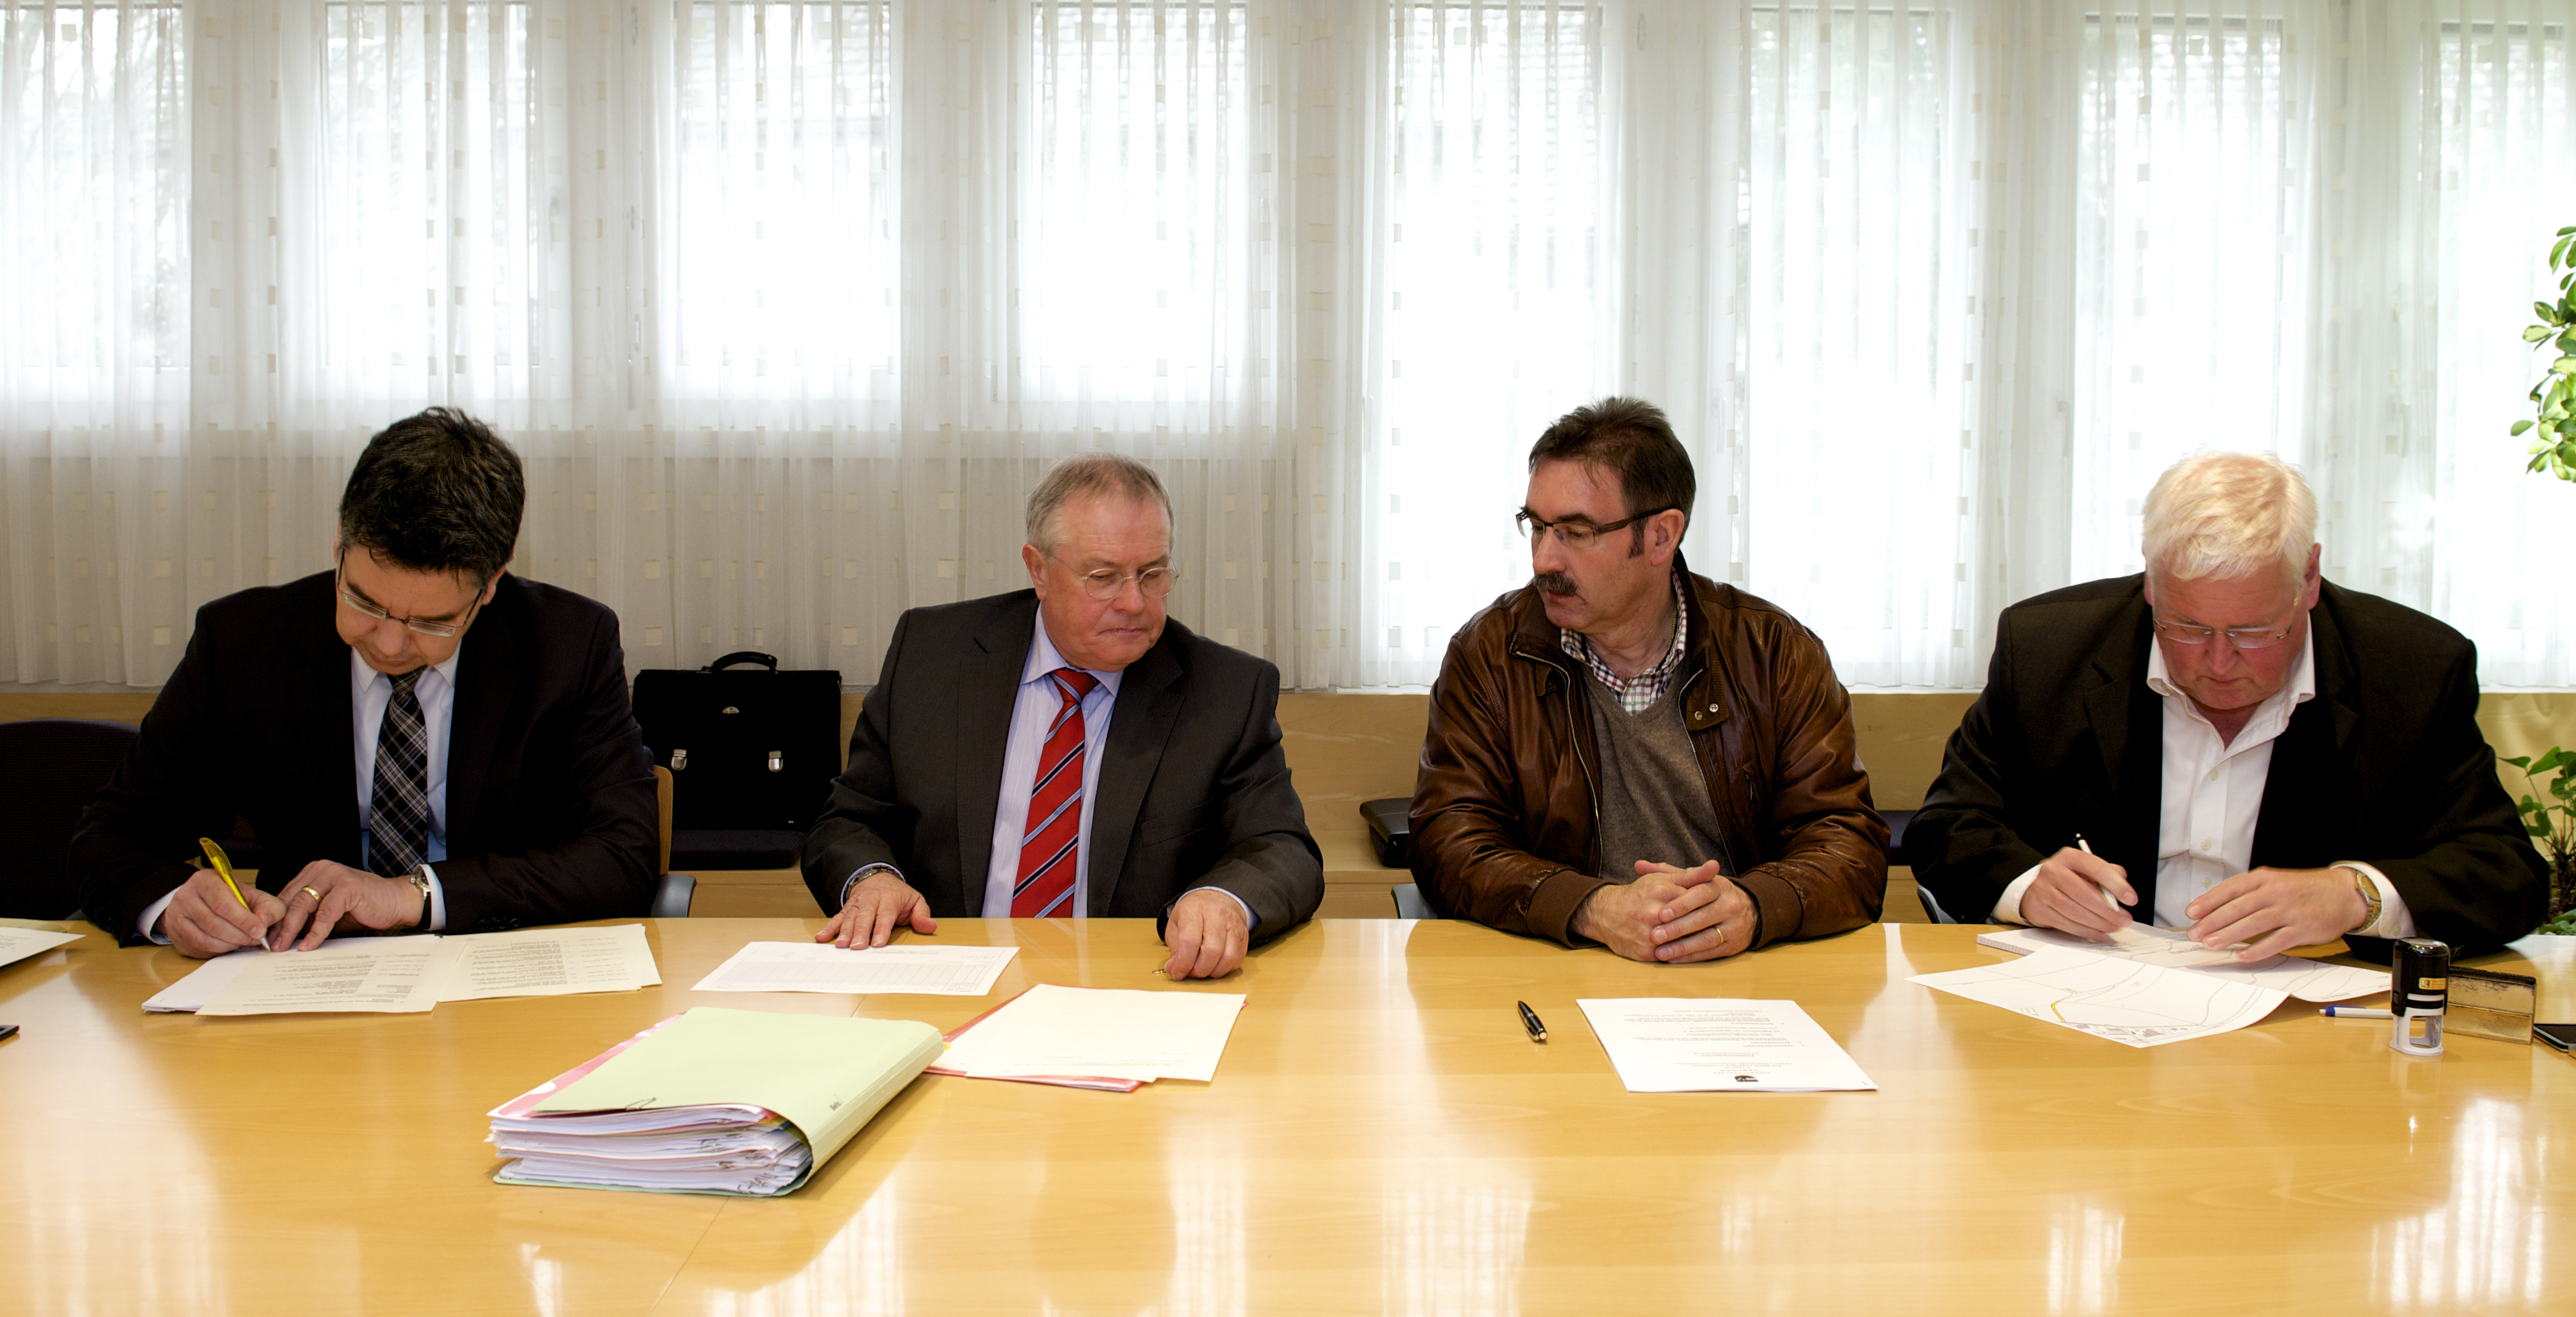 Signing of the building rights agreement with representatives of the Citizens' Commune of Würenlingen. Pictured are: Simon Stemmer, Head of Building Works, ETH Board, Kurt Bächli, notary, André Zoppi, Mayor, and Andreas Senn, Communal Chancellor.